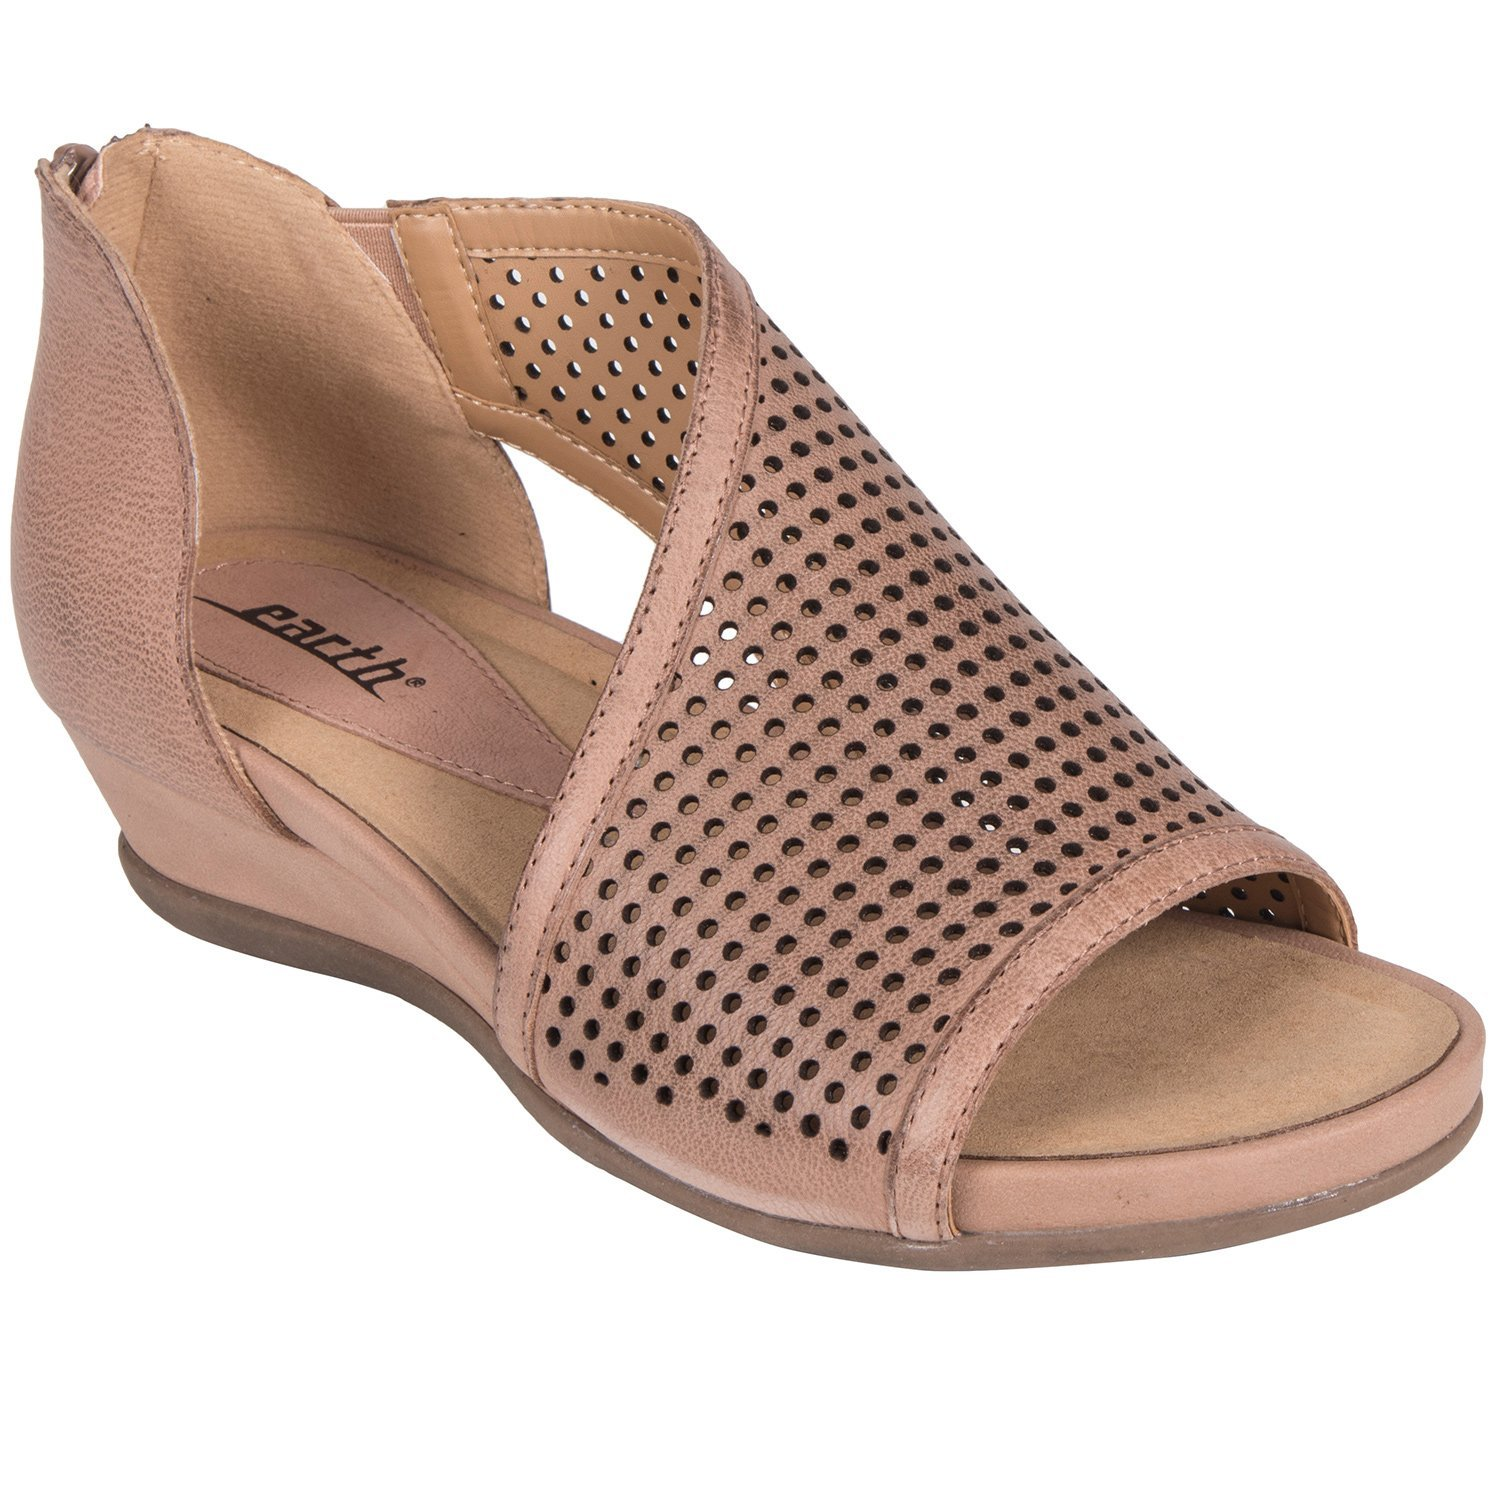 Earth Womens Venus Blush Sandal - 8